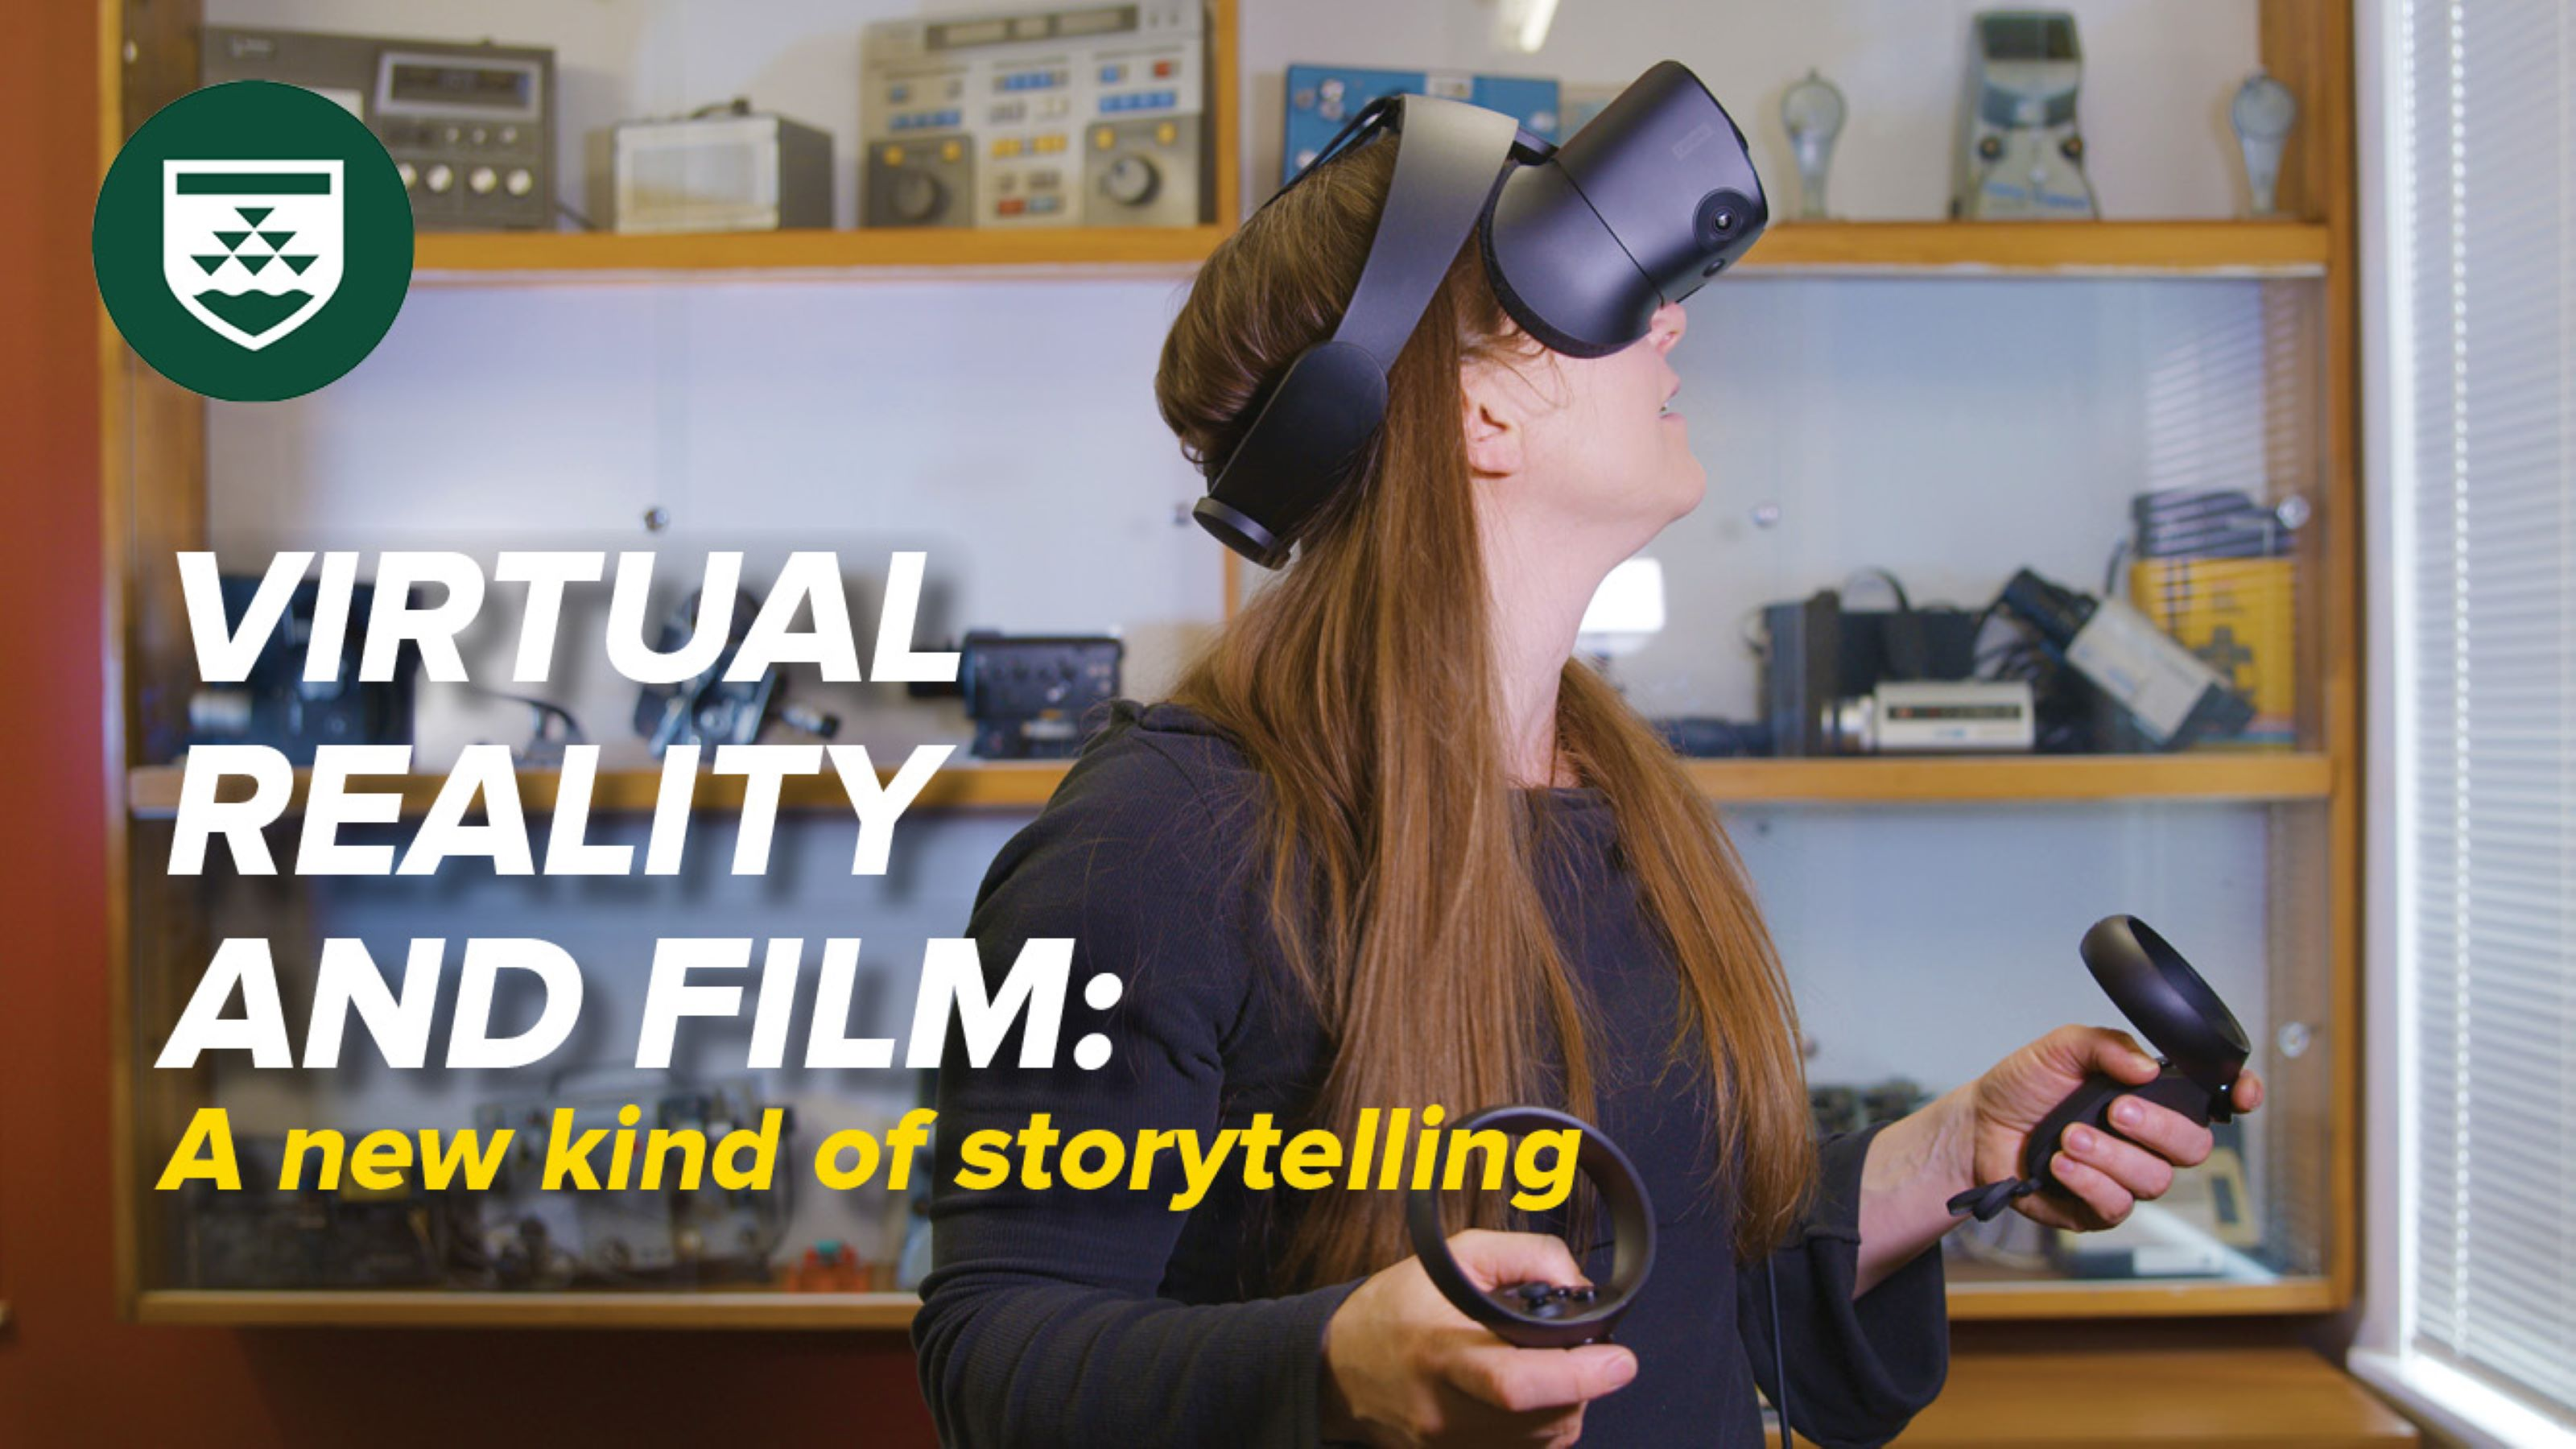 A woman uses an oculus rift in an office space, with white text that reads virtual reality and film, a new kind of storytelling.